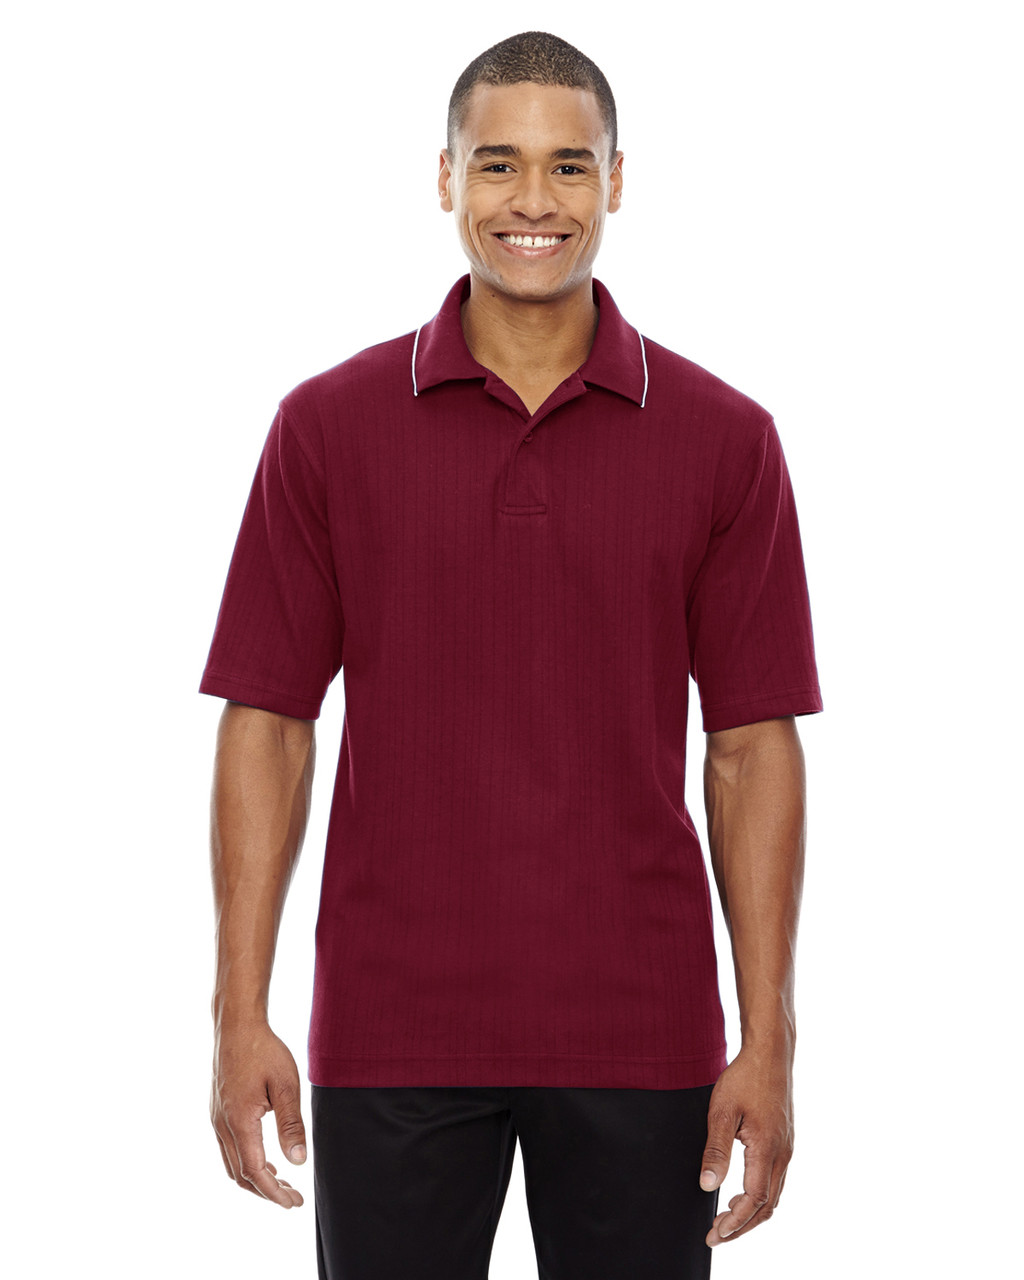 Crimson - 85067 Extreme Men's Edry™ Needle Out Interlock Polo Shirt | BlankClothing.ca